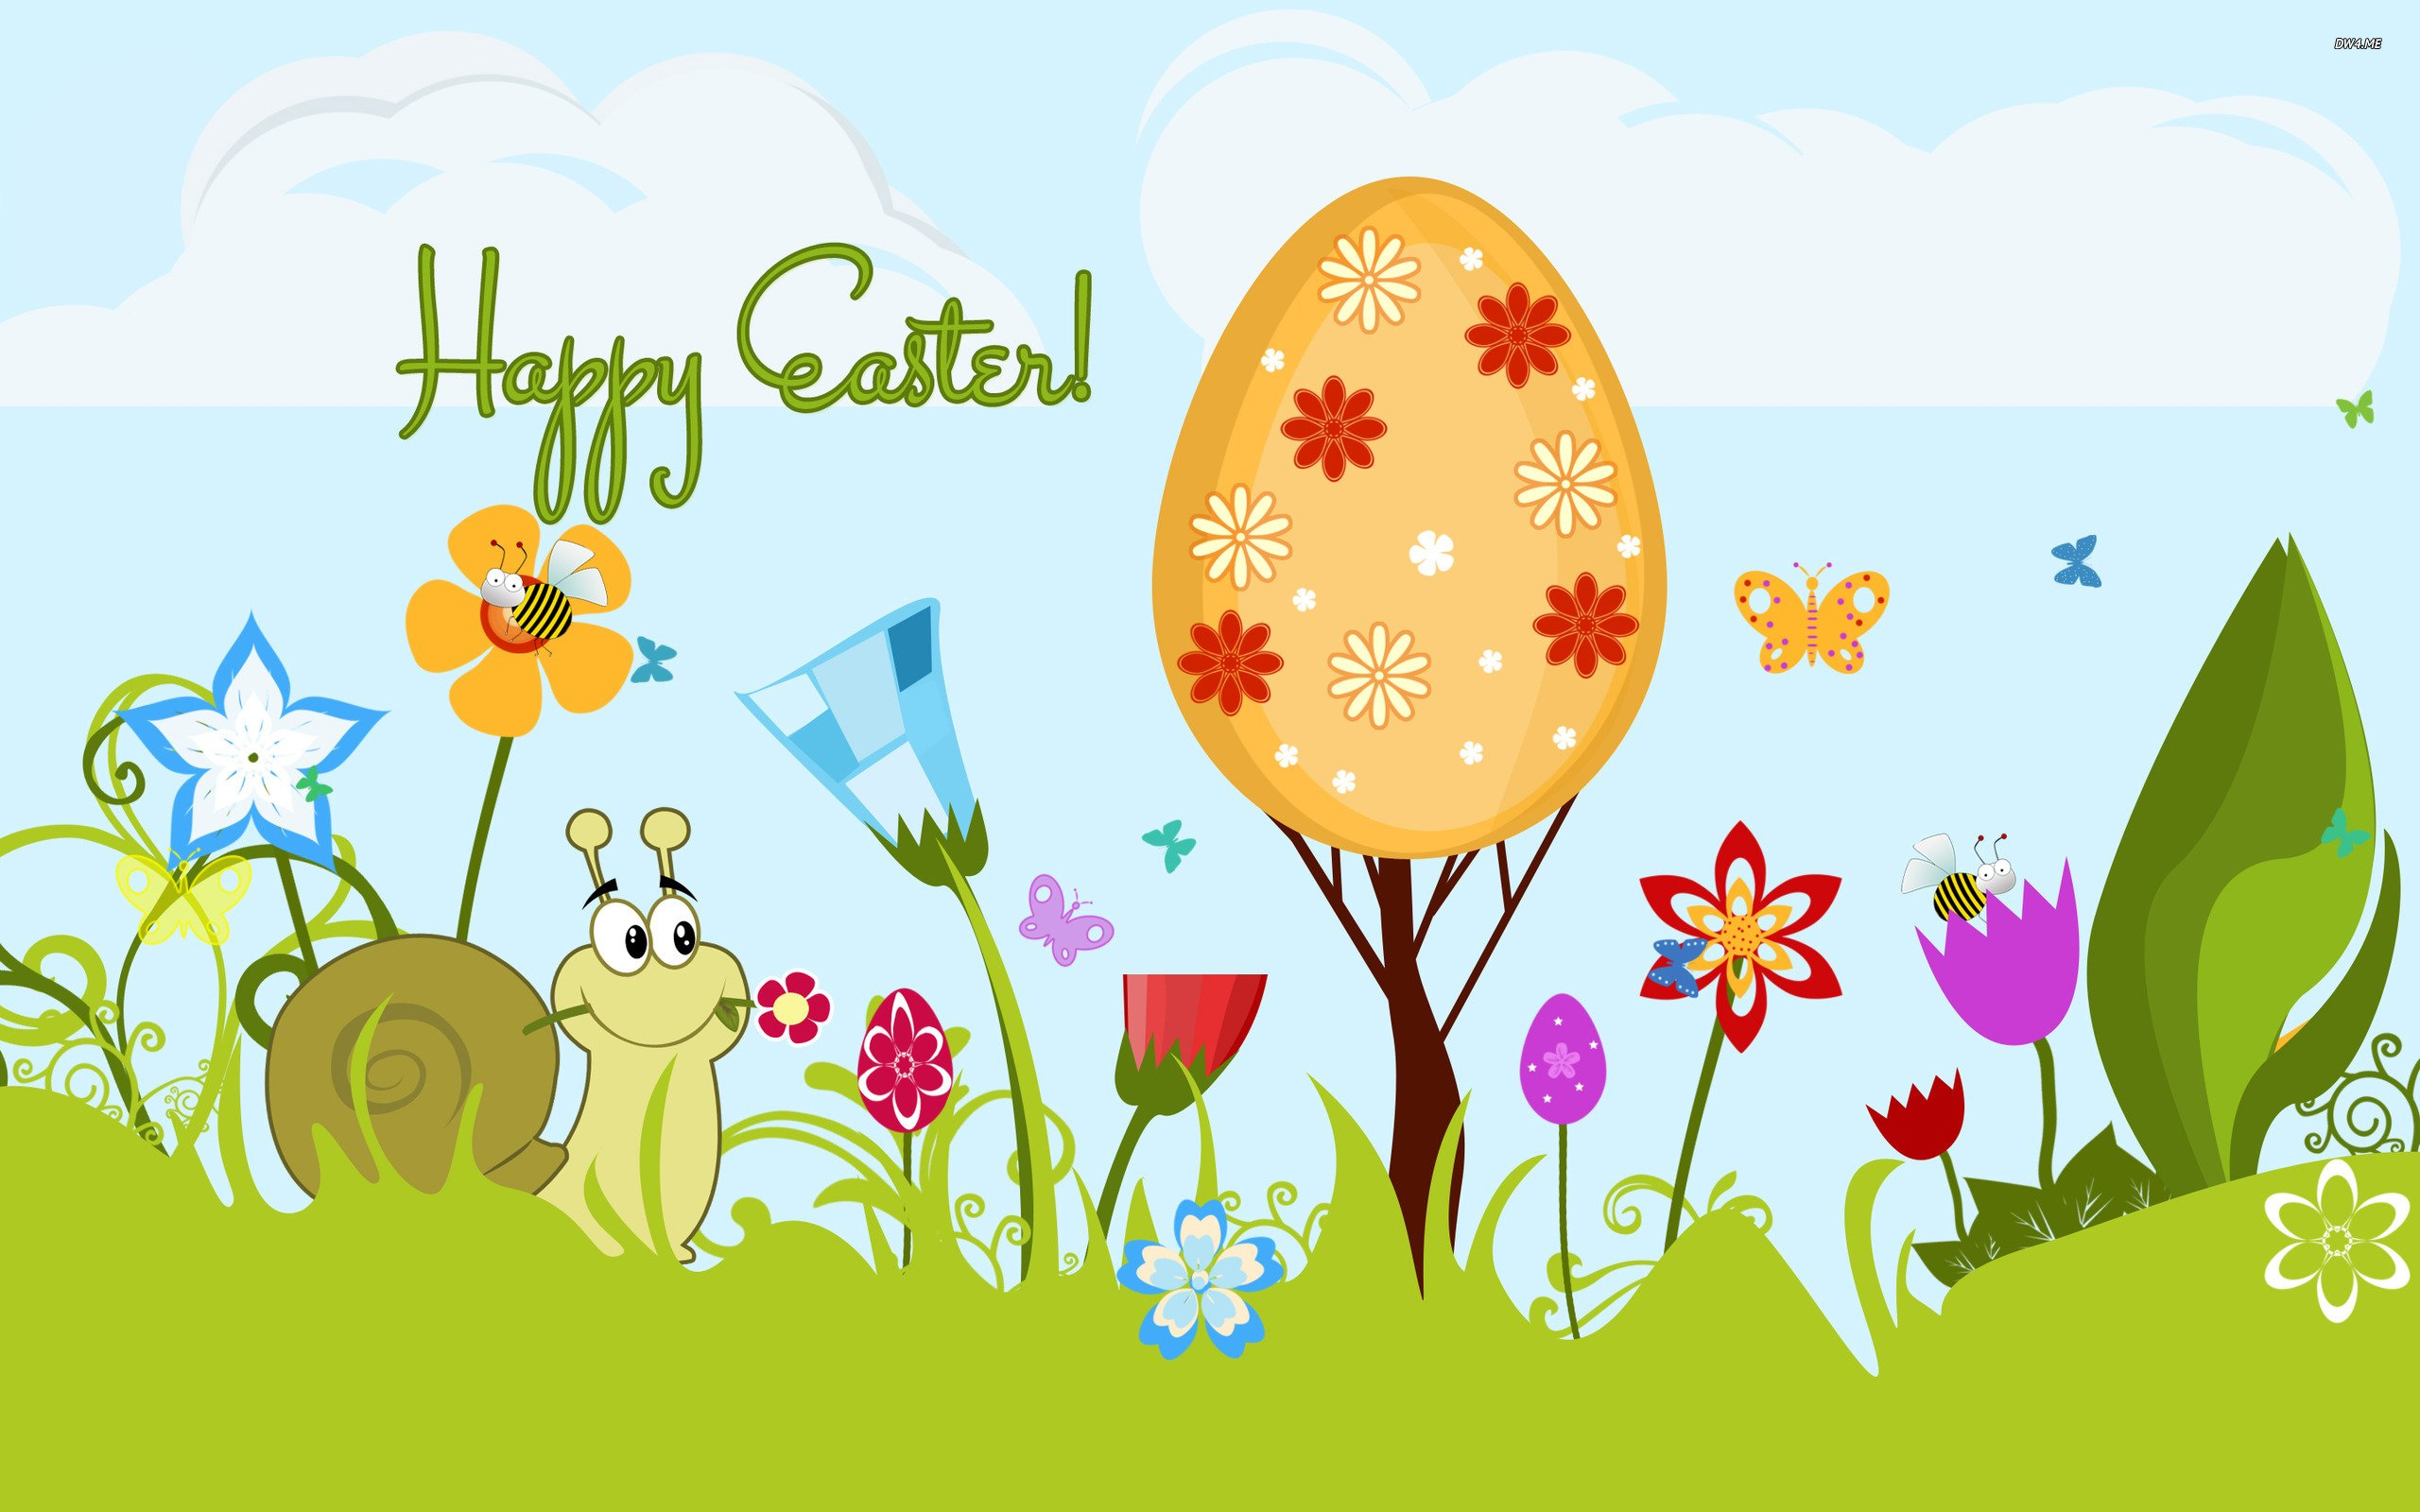 Happy Easter wallpaper   Holiday wallpapers   1258 2560x1600